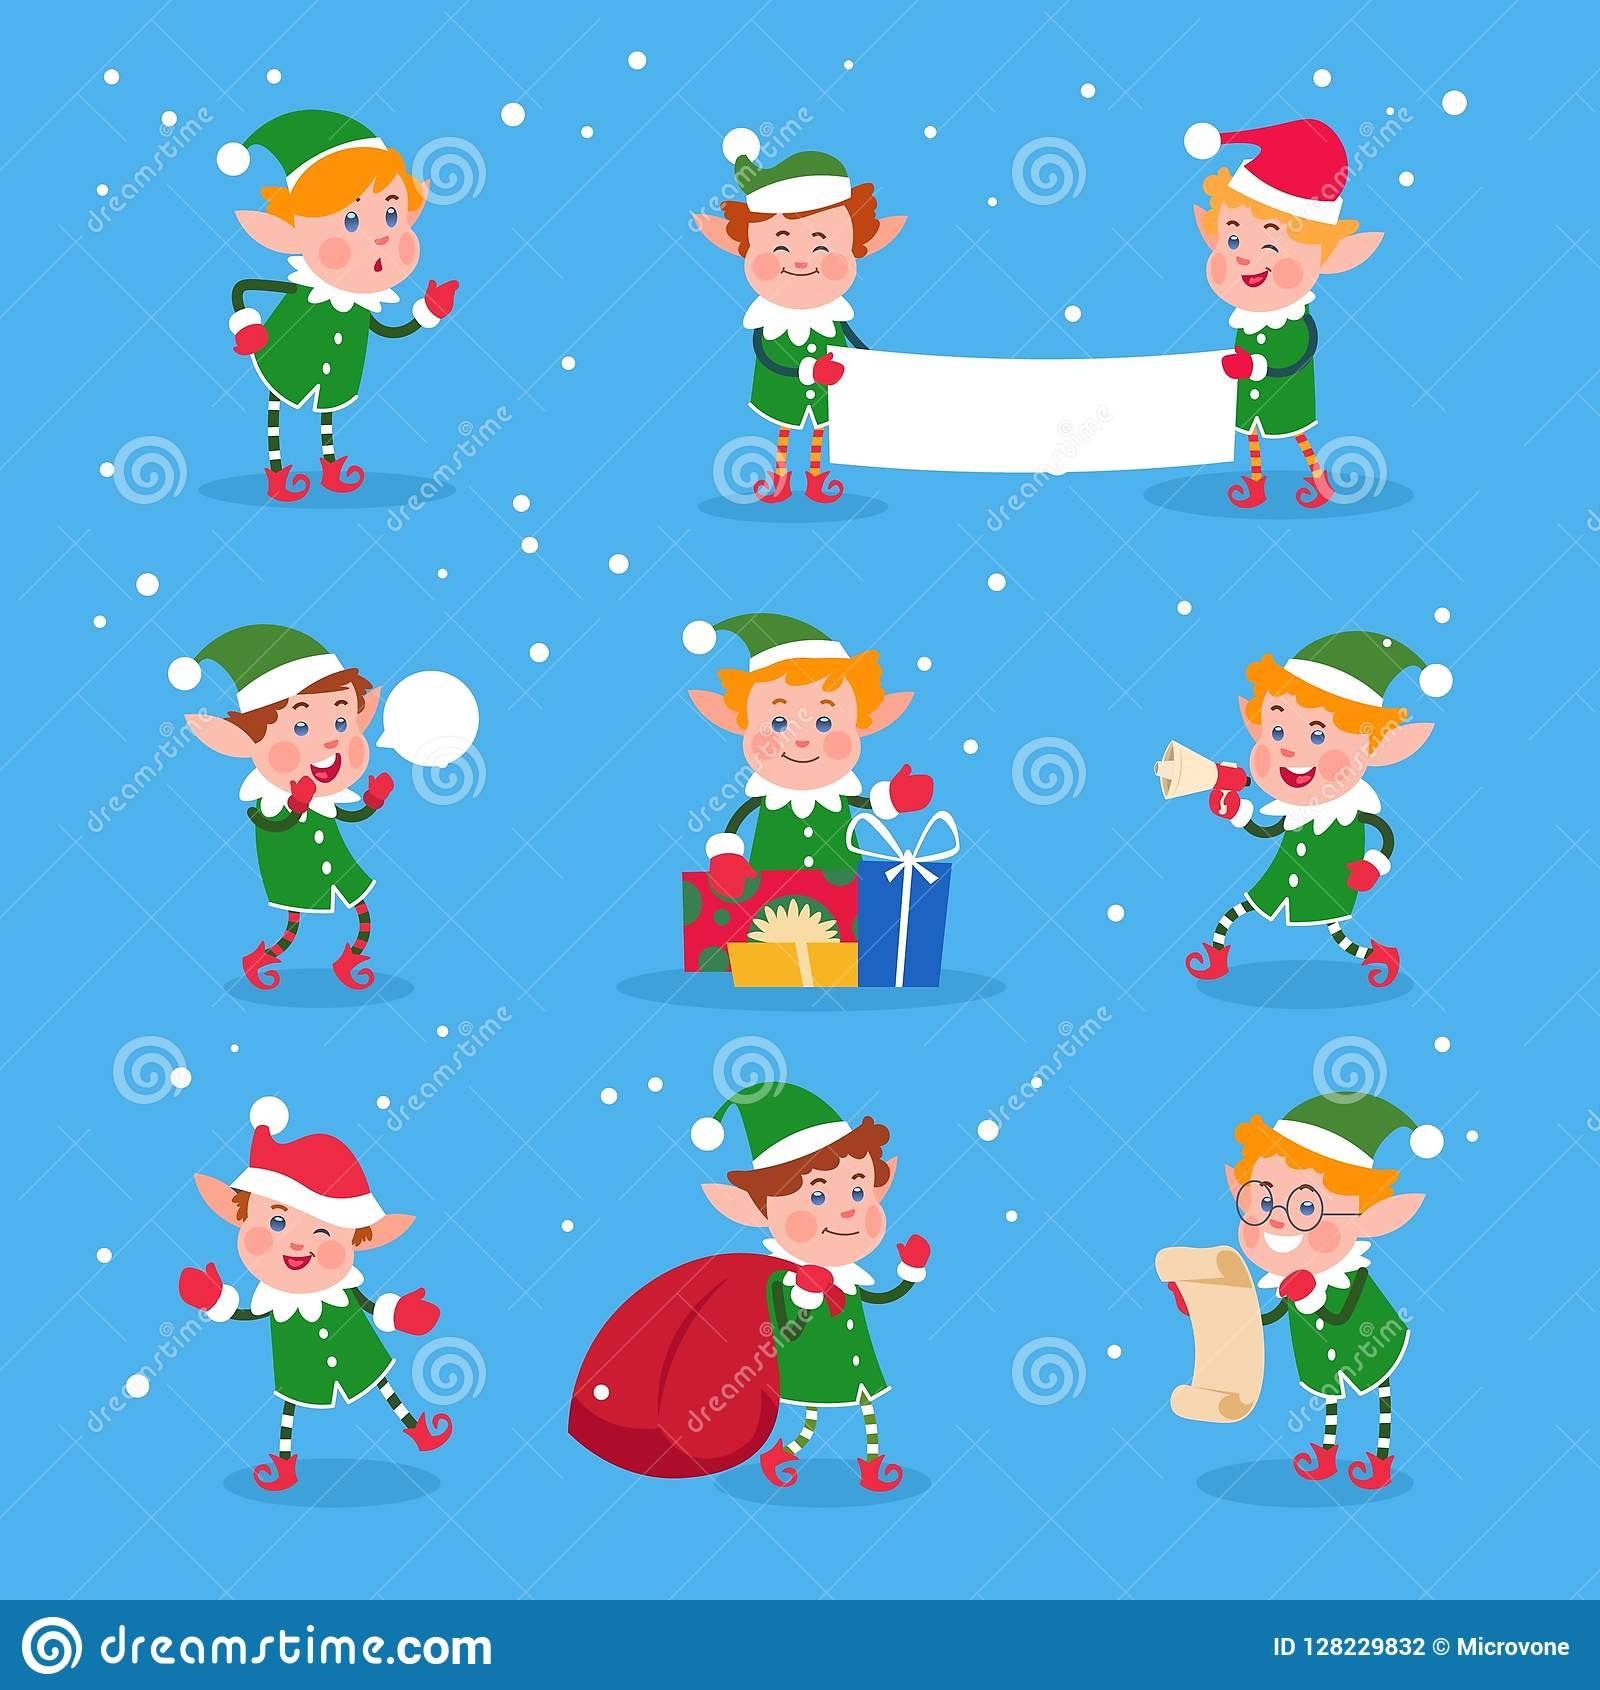 b7a60e07ee8 Christmas elf. Baby elves santa claus helpers. Funny winter dwarf vector  characters. Illustration of funny character boy